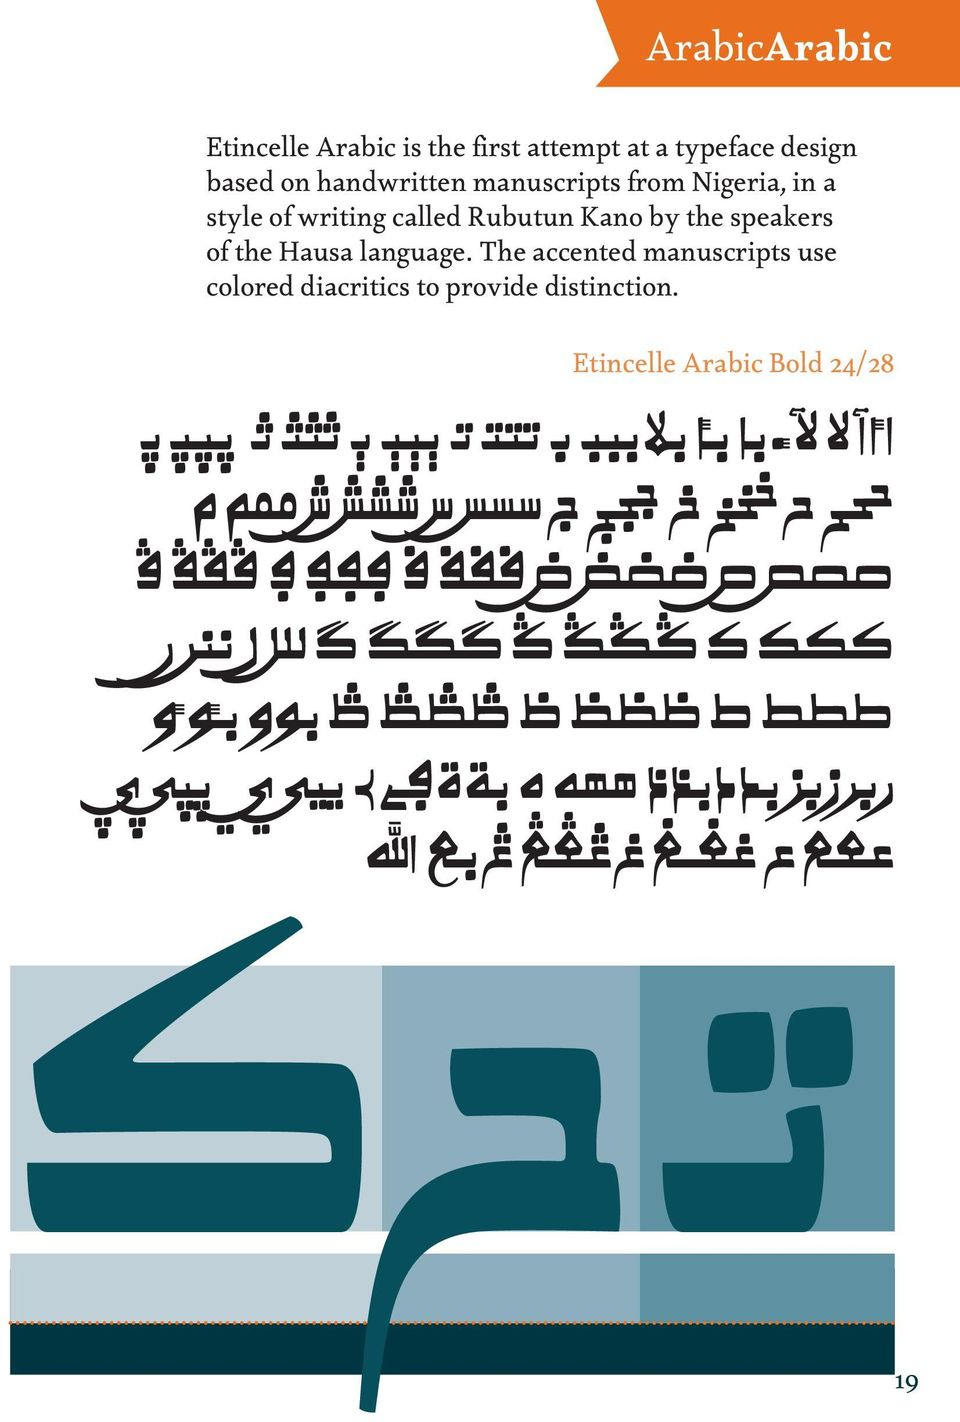 The accented manuscripts use colored diacritics to provide distinction.